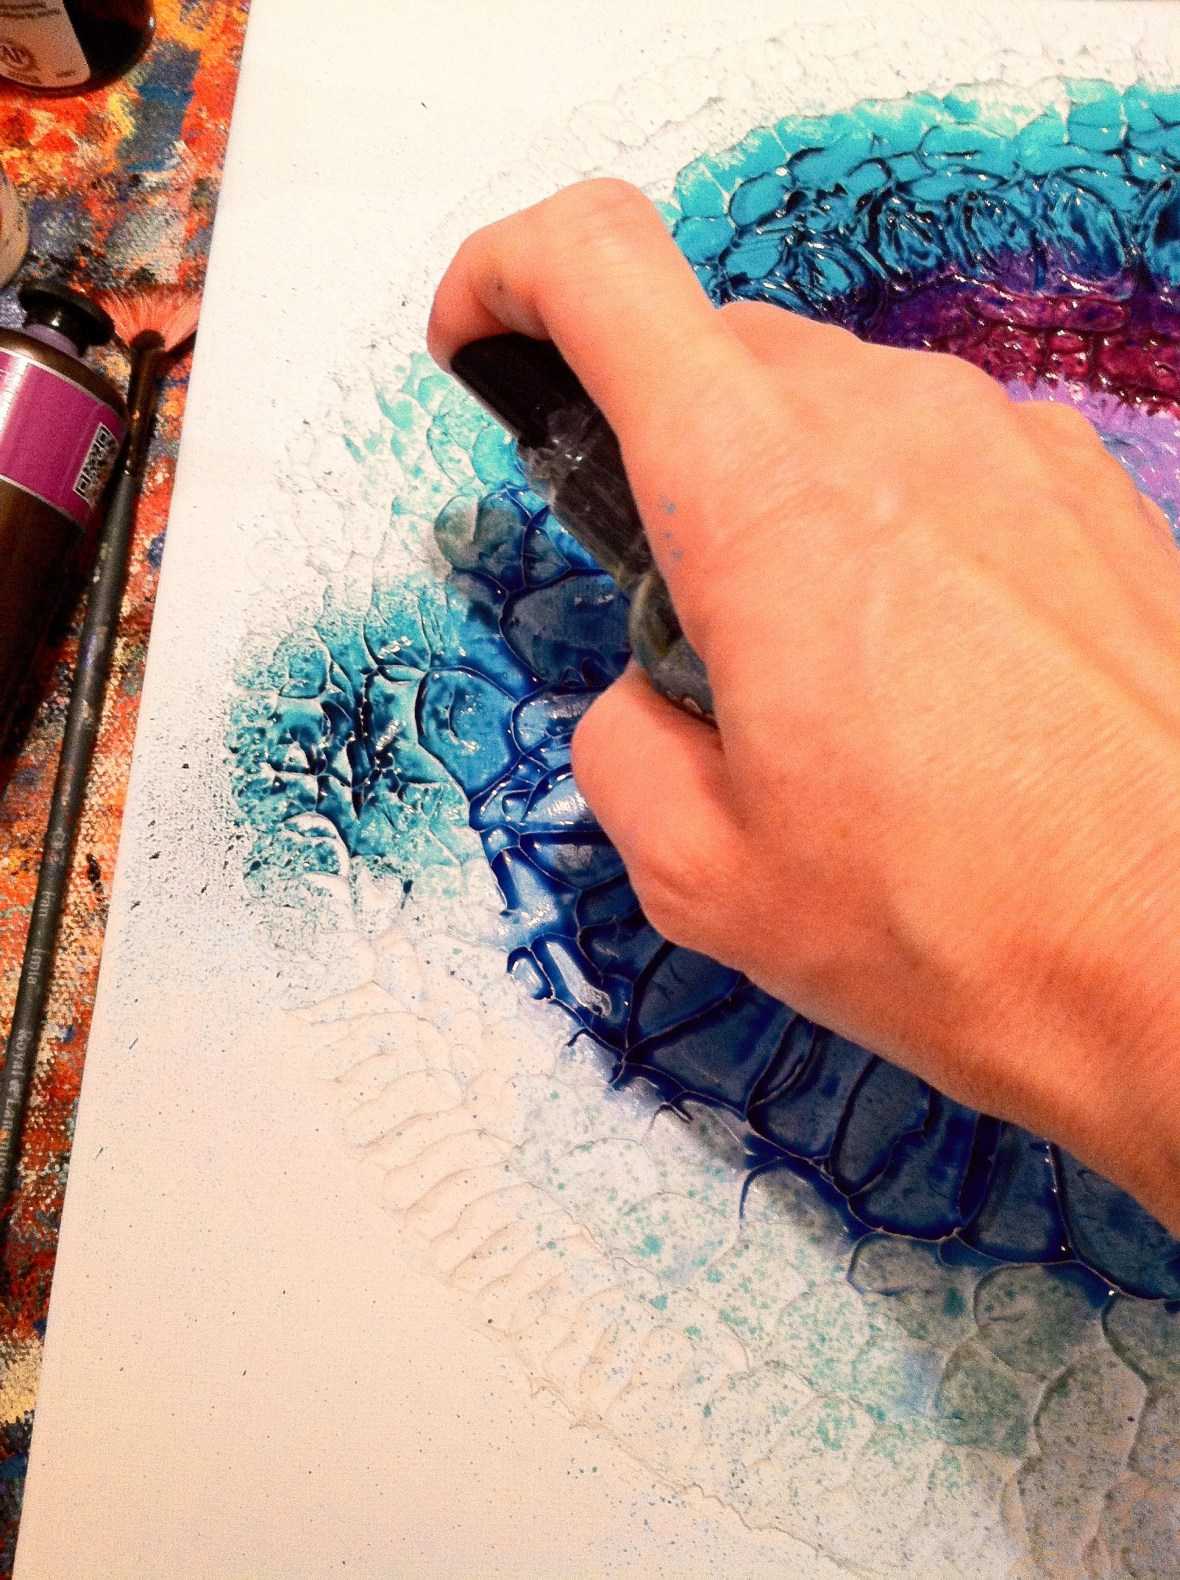 spraying ink